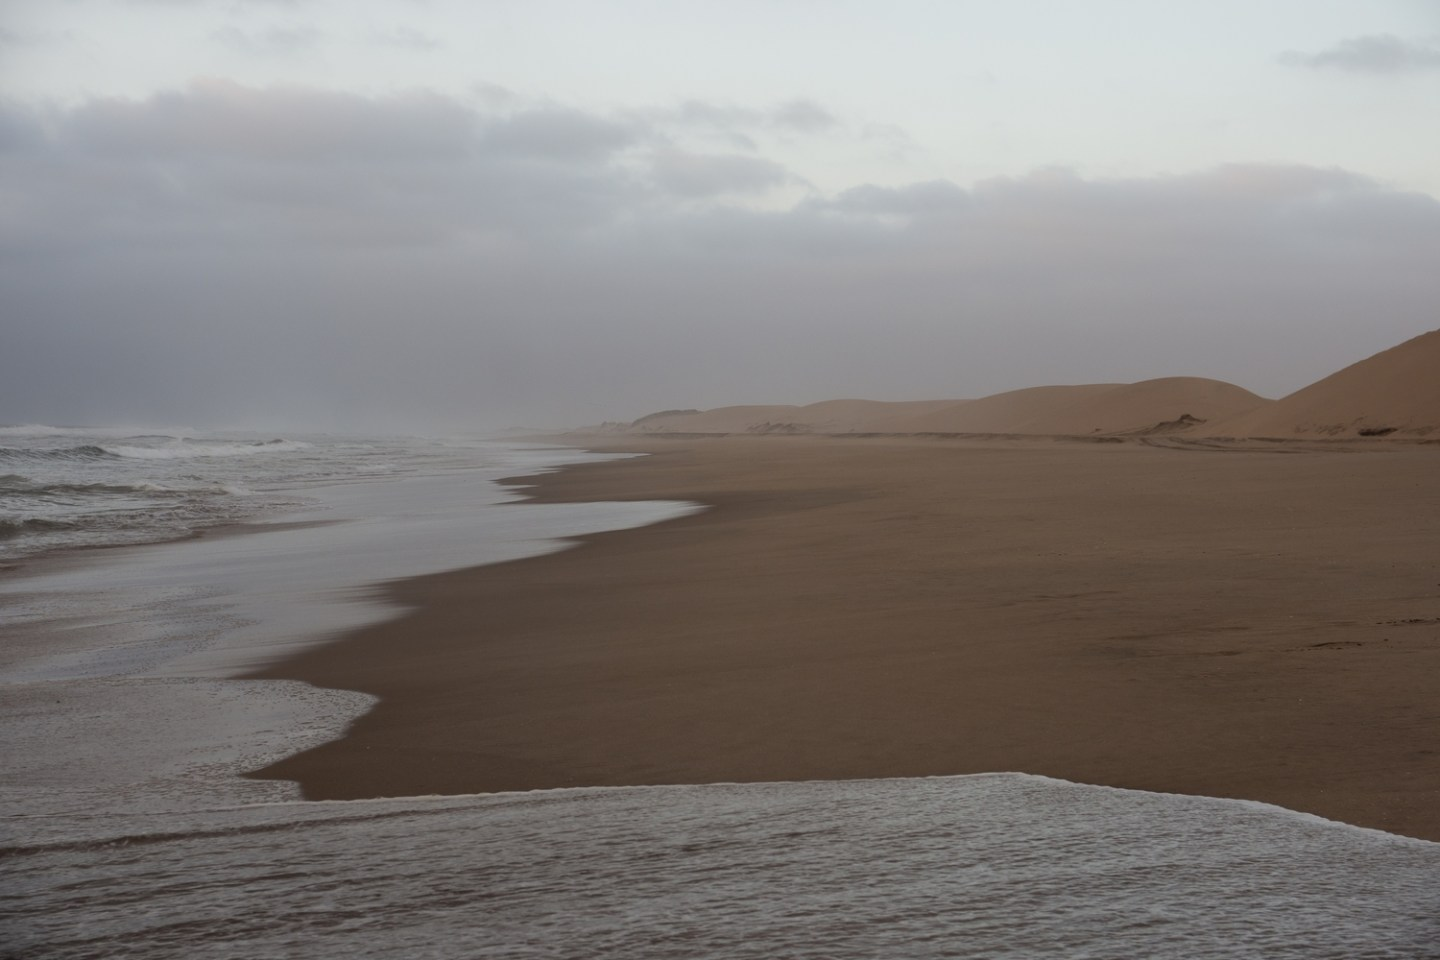 Wheere the Namib Desert meets the Atlantic Ocean swim